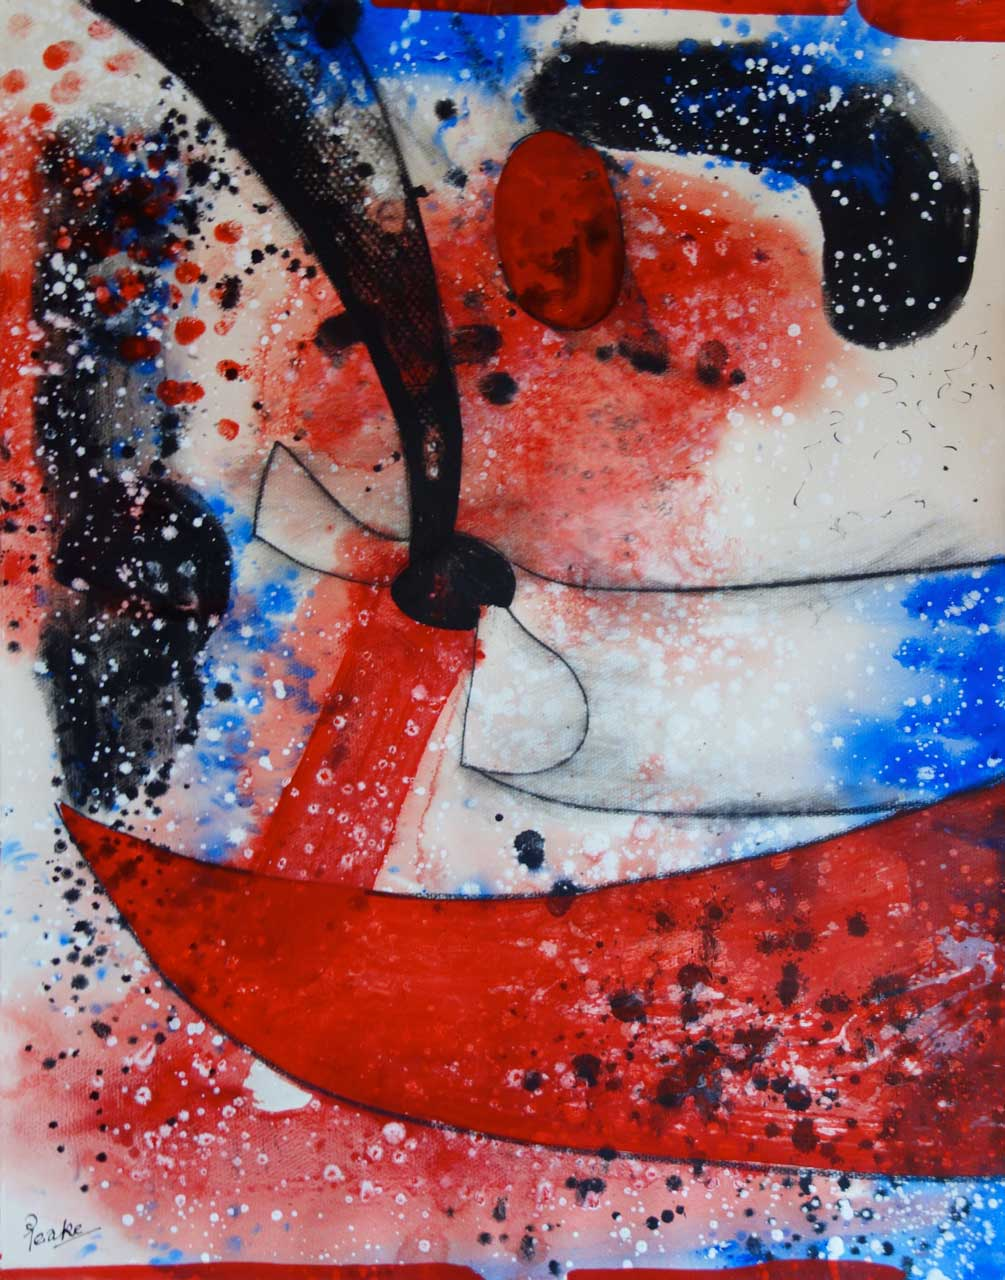 Channig Peake - Abstraction 1976